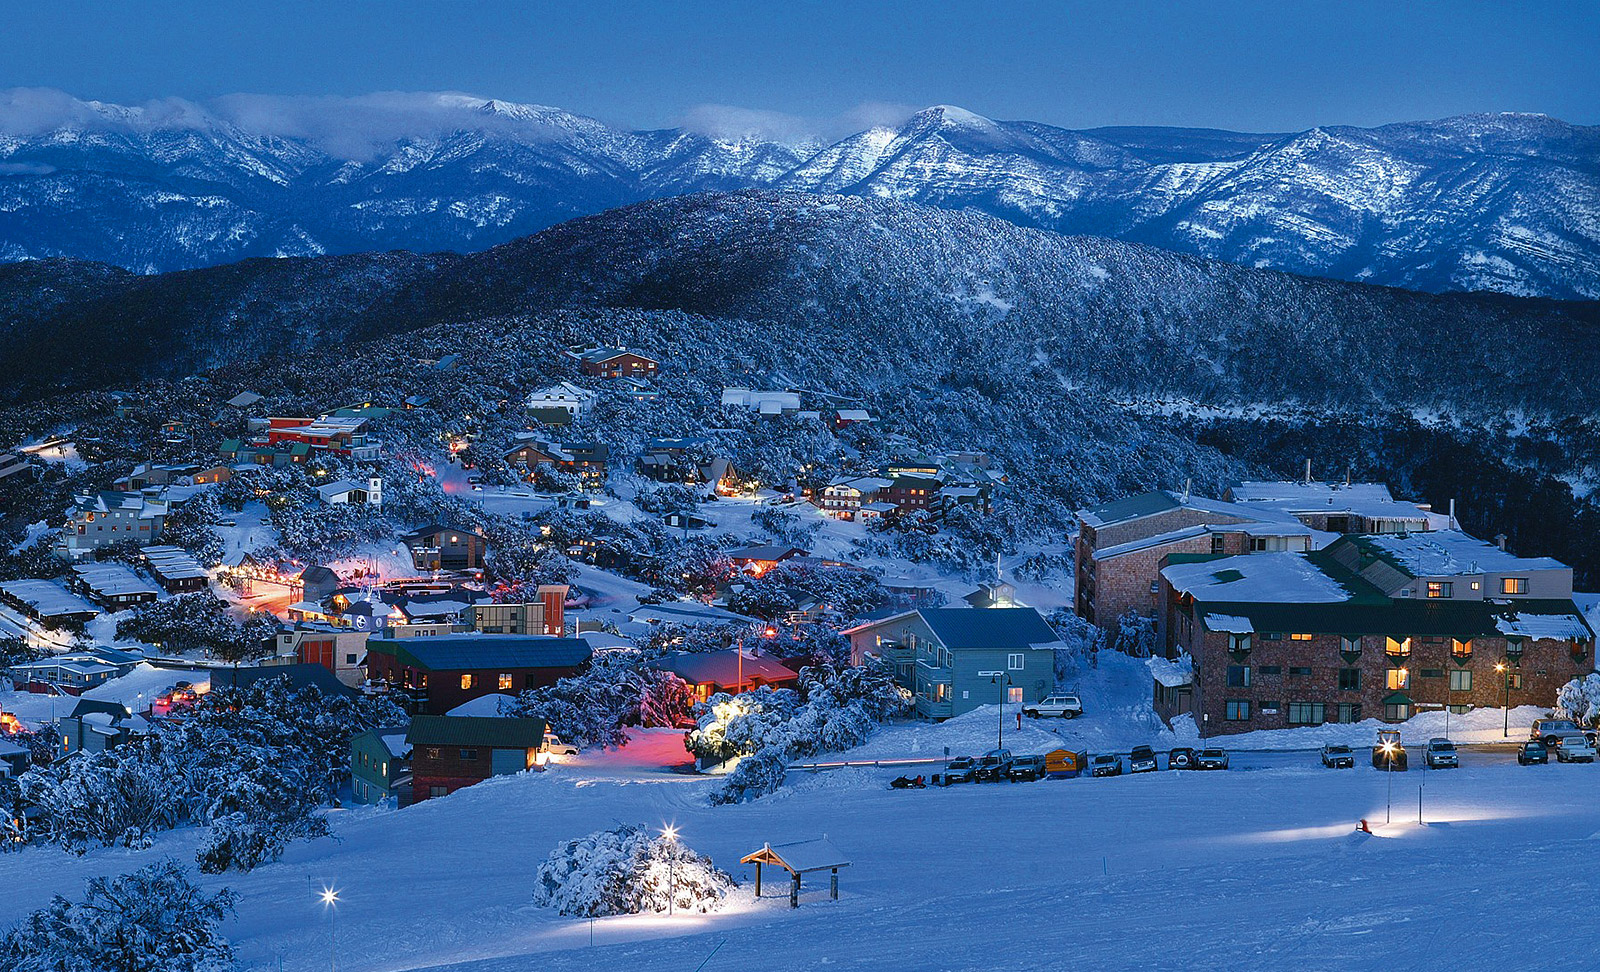 Arlberg Hotel Mt Buller - Accommodation Sunshine Coast